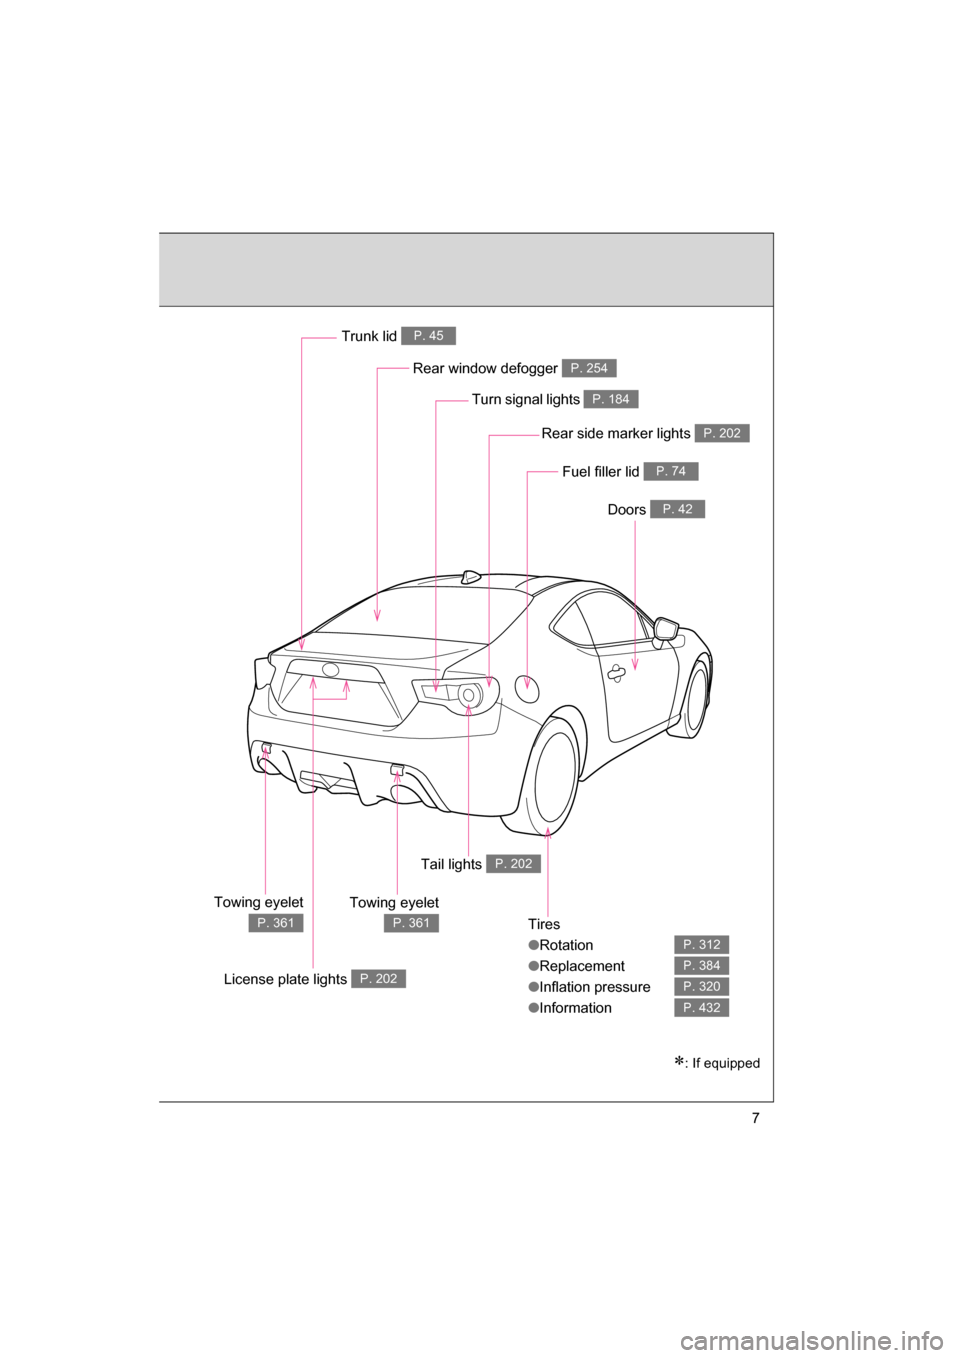 SUBARU BRZ 2015 1.G Owners Manual, Page 7